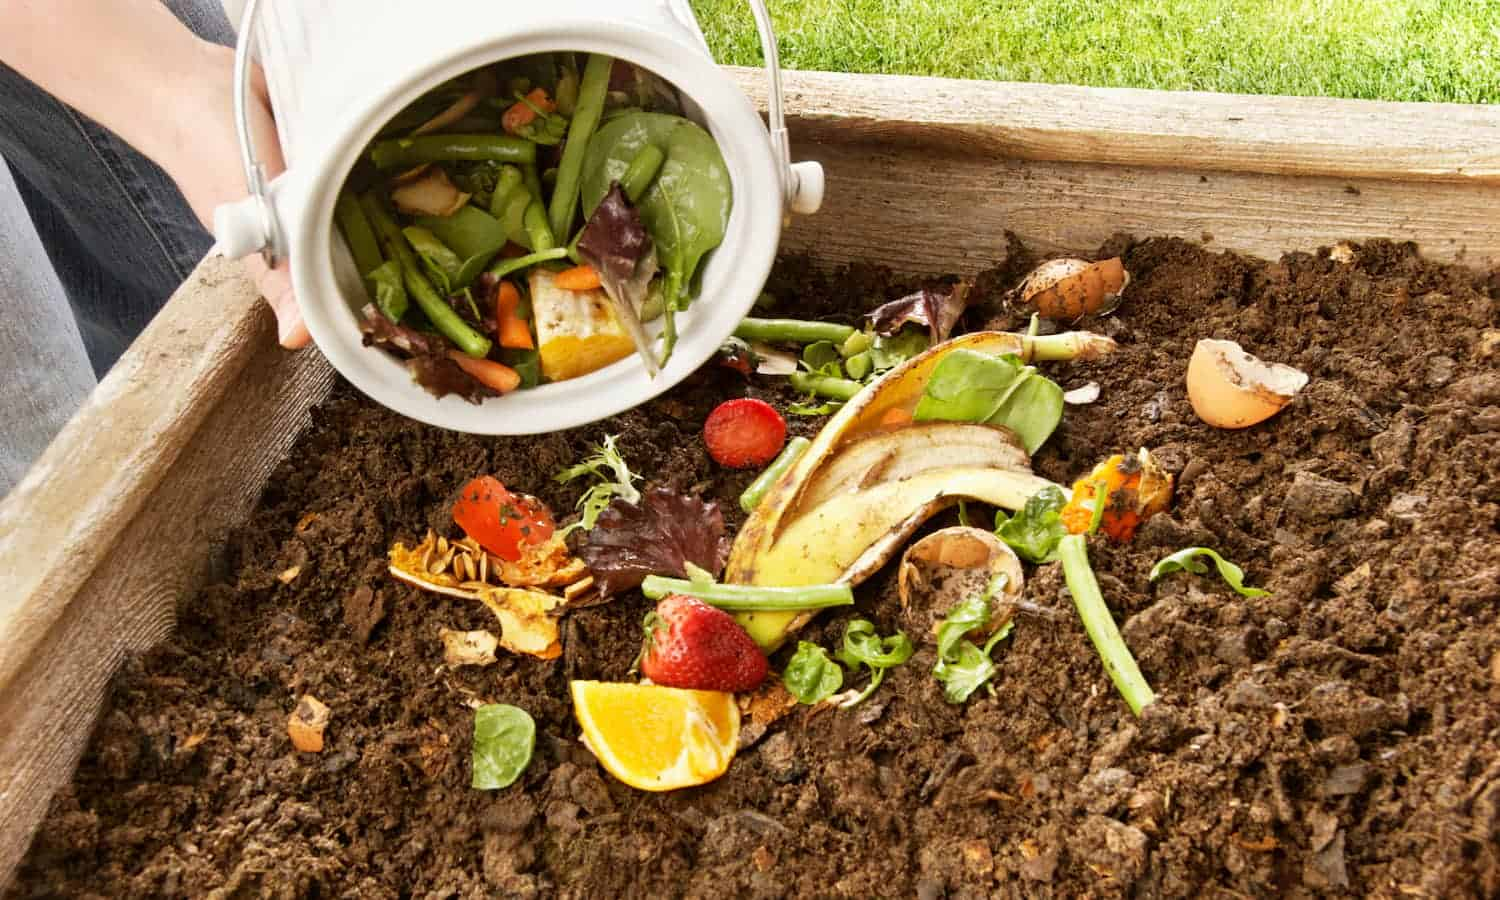 The EU Platform on Food Losses and Food Waste met to track of the EU's progress toward reducing waste by 50 percent.